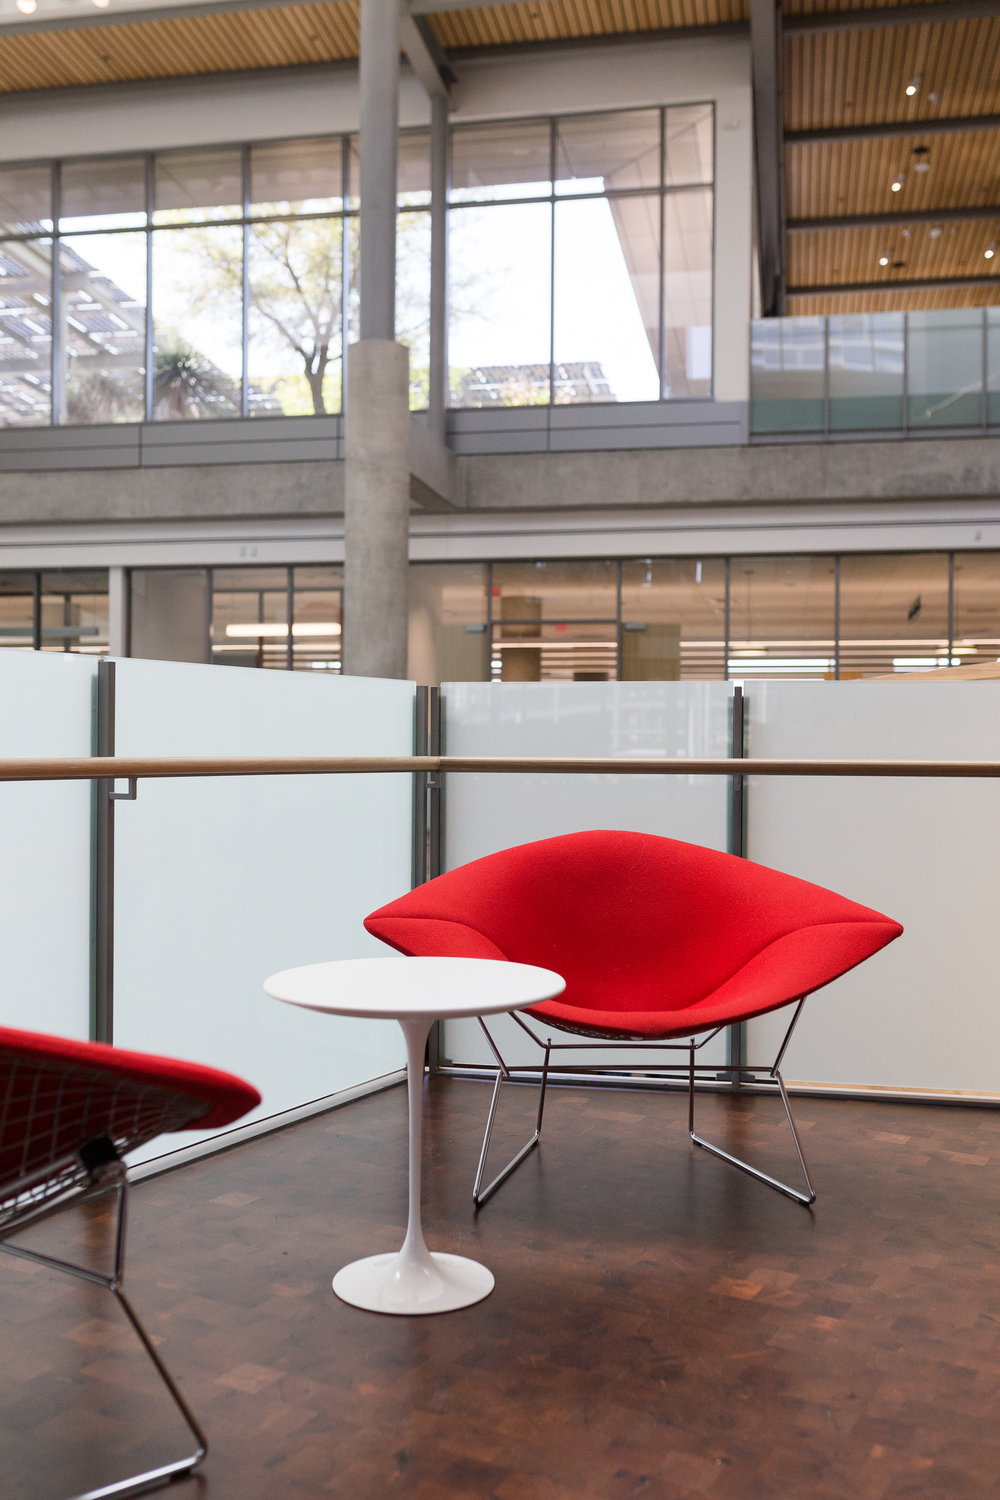 Impeccable design is one of the cornerstones of the Central Library.